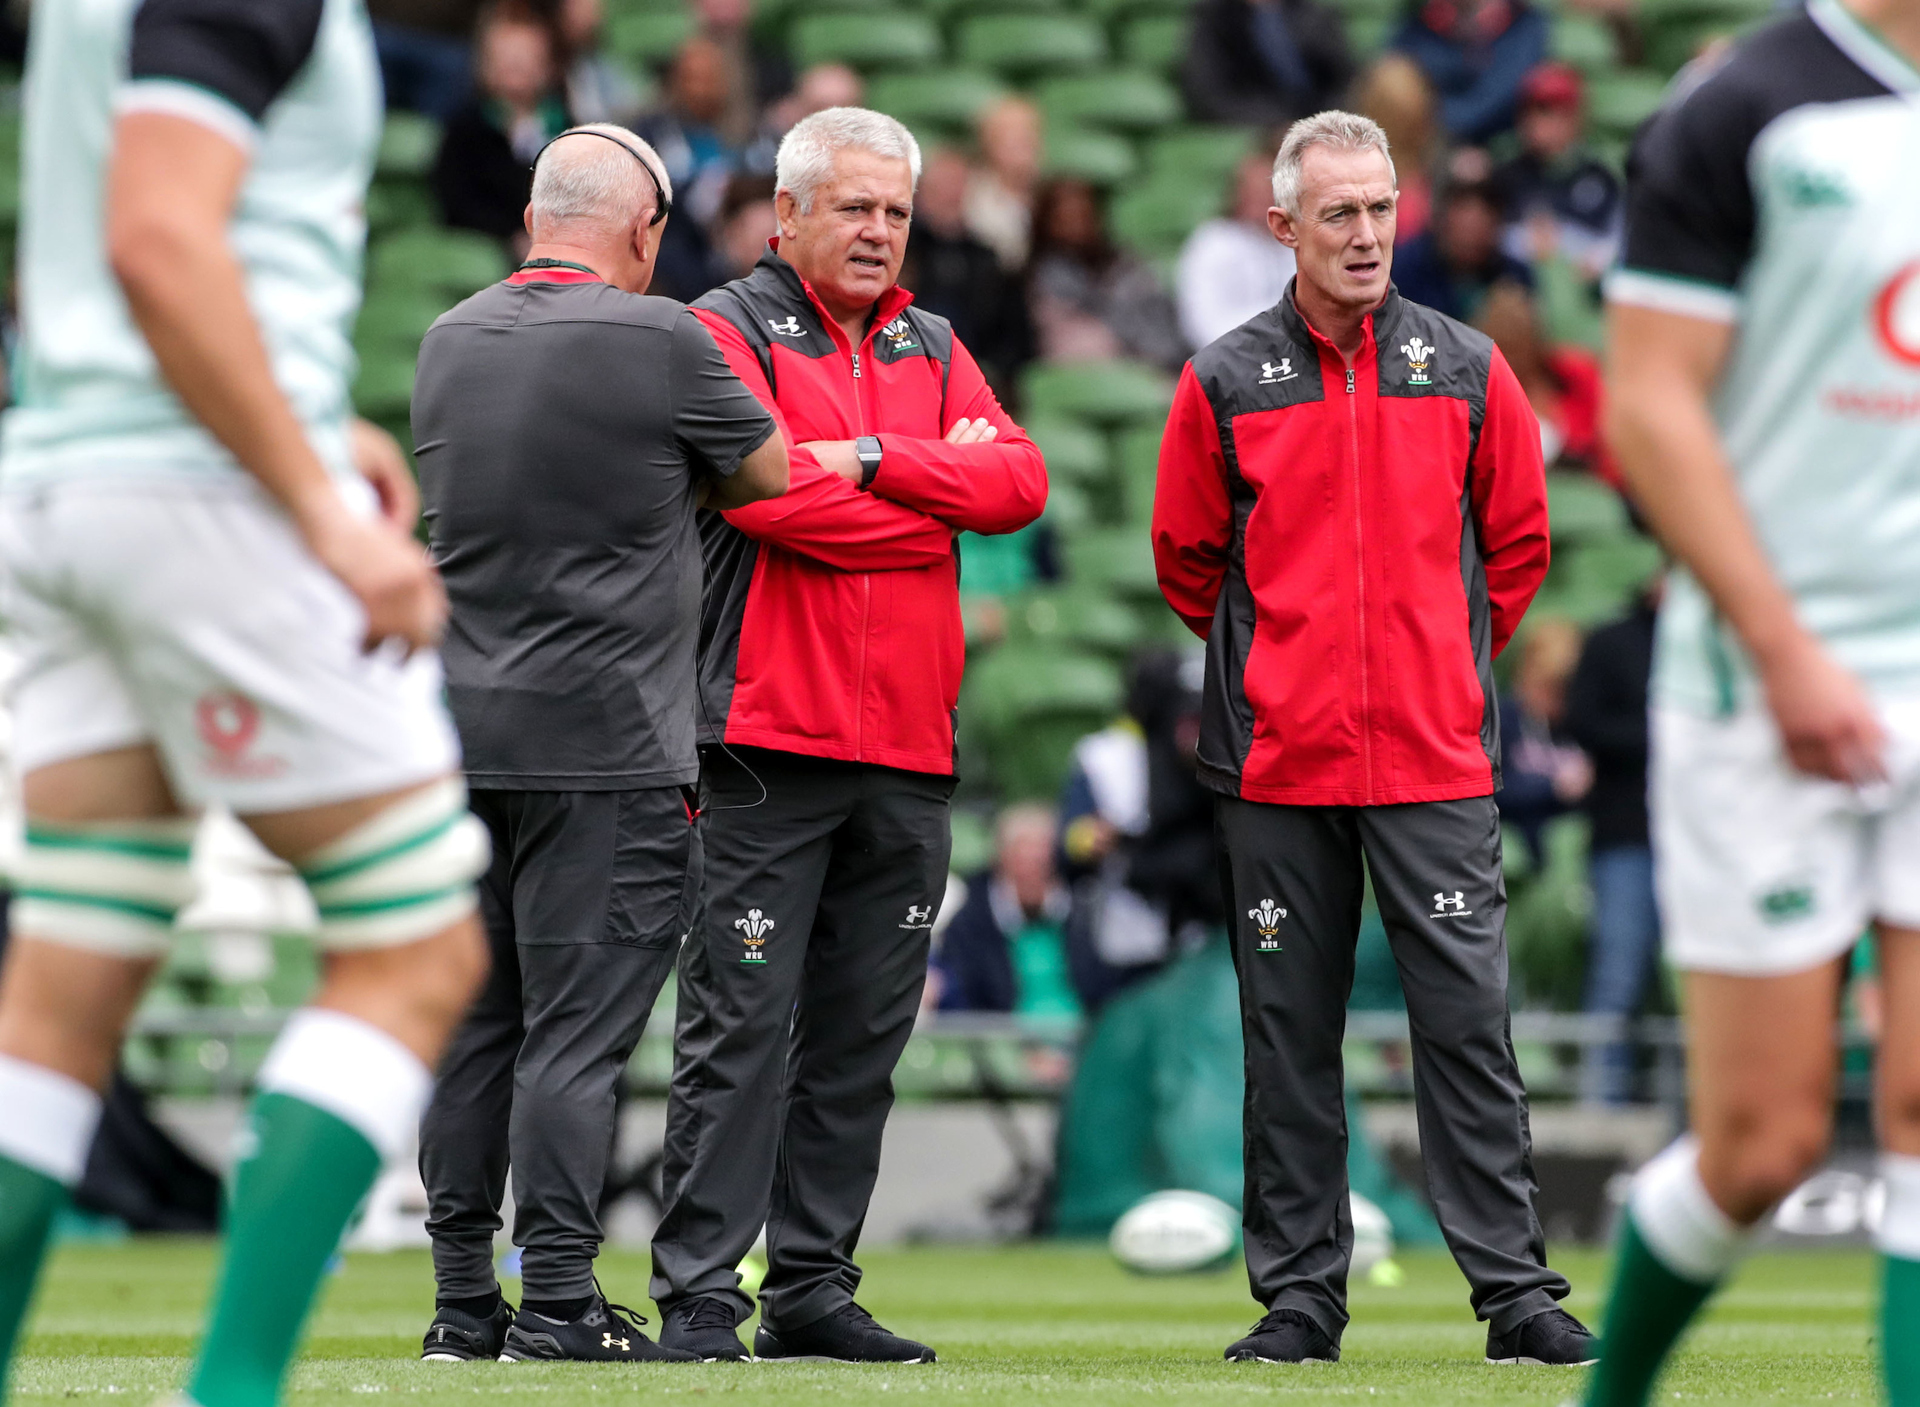 Rugby World Cup: Wales assistant coach sent home over betting case